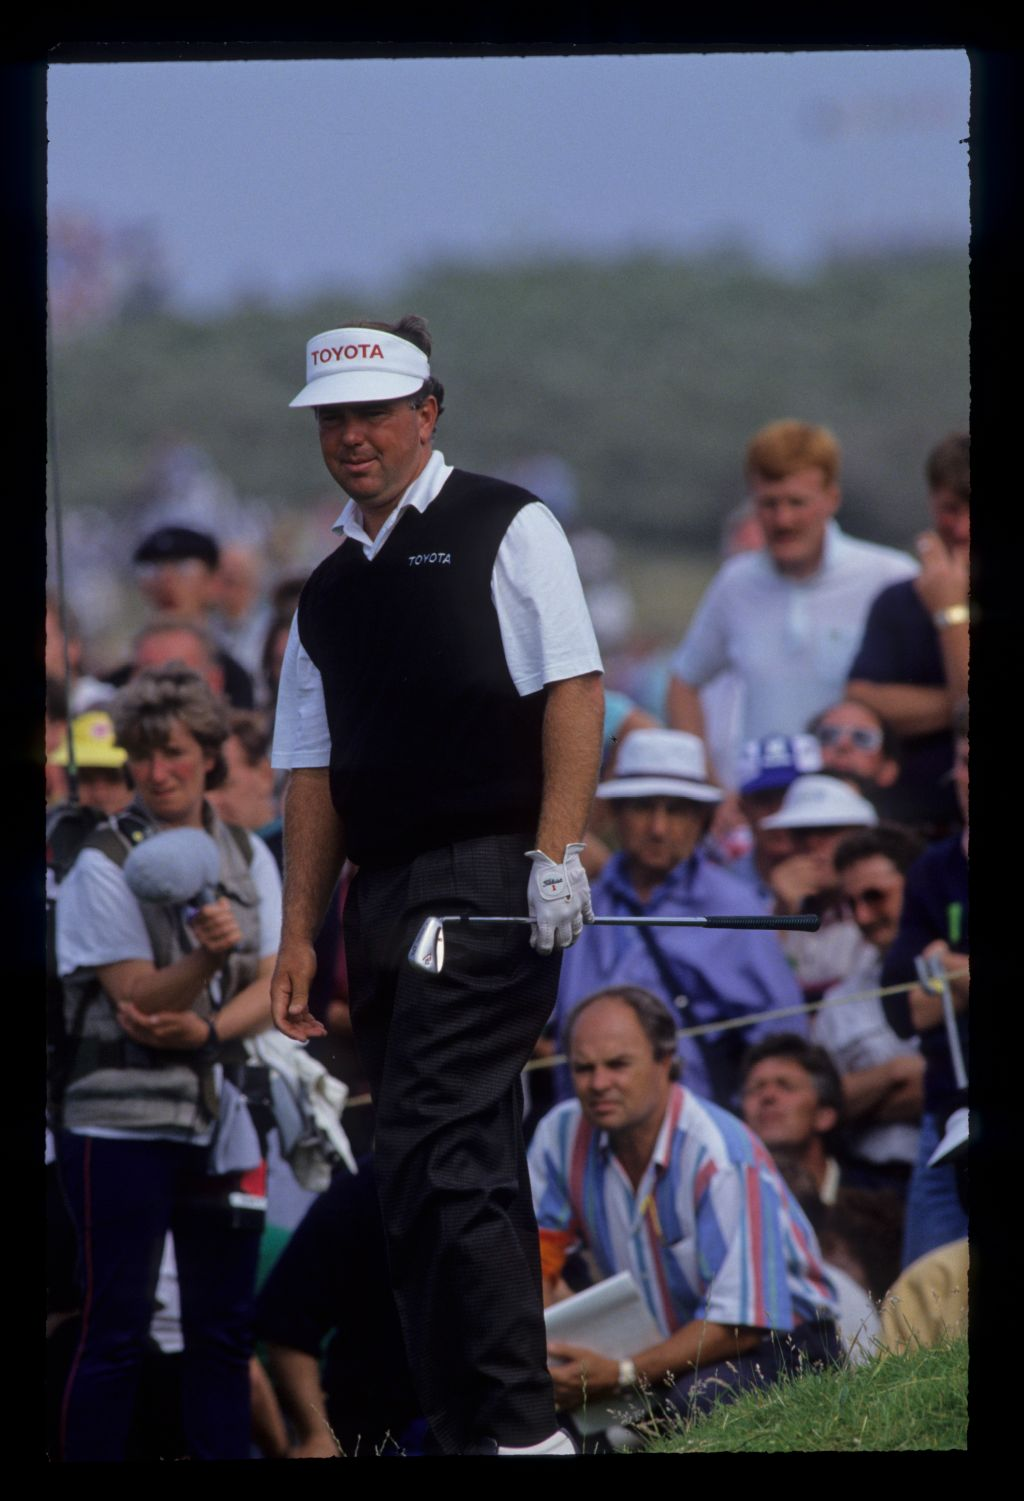 Mark O'Meara watching the result after chipping during the 1991 Open Championship